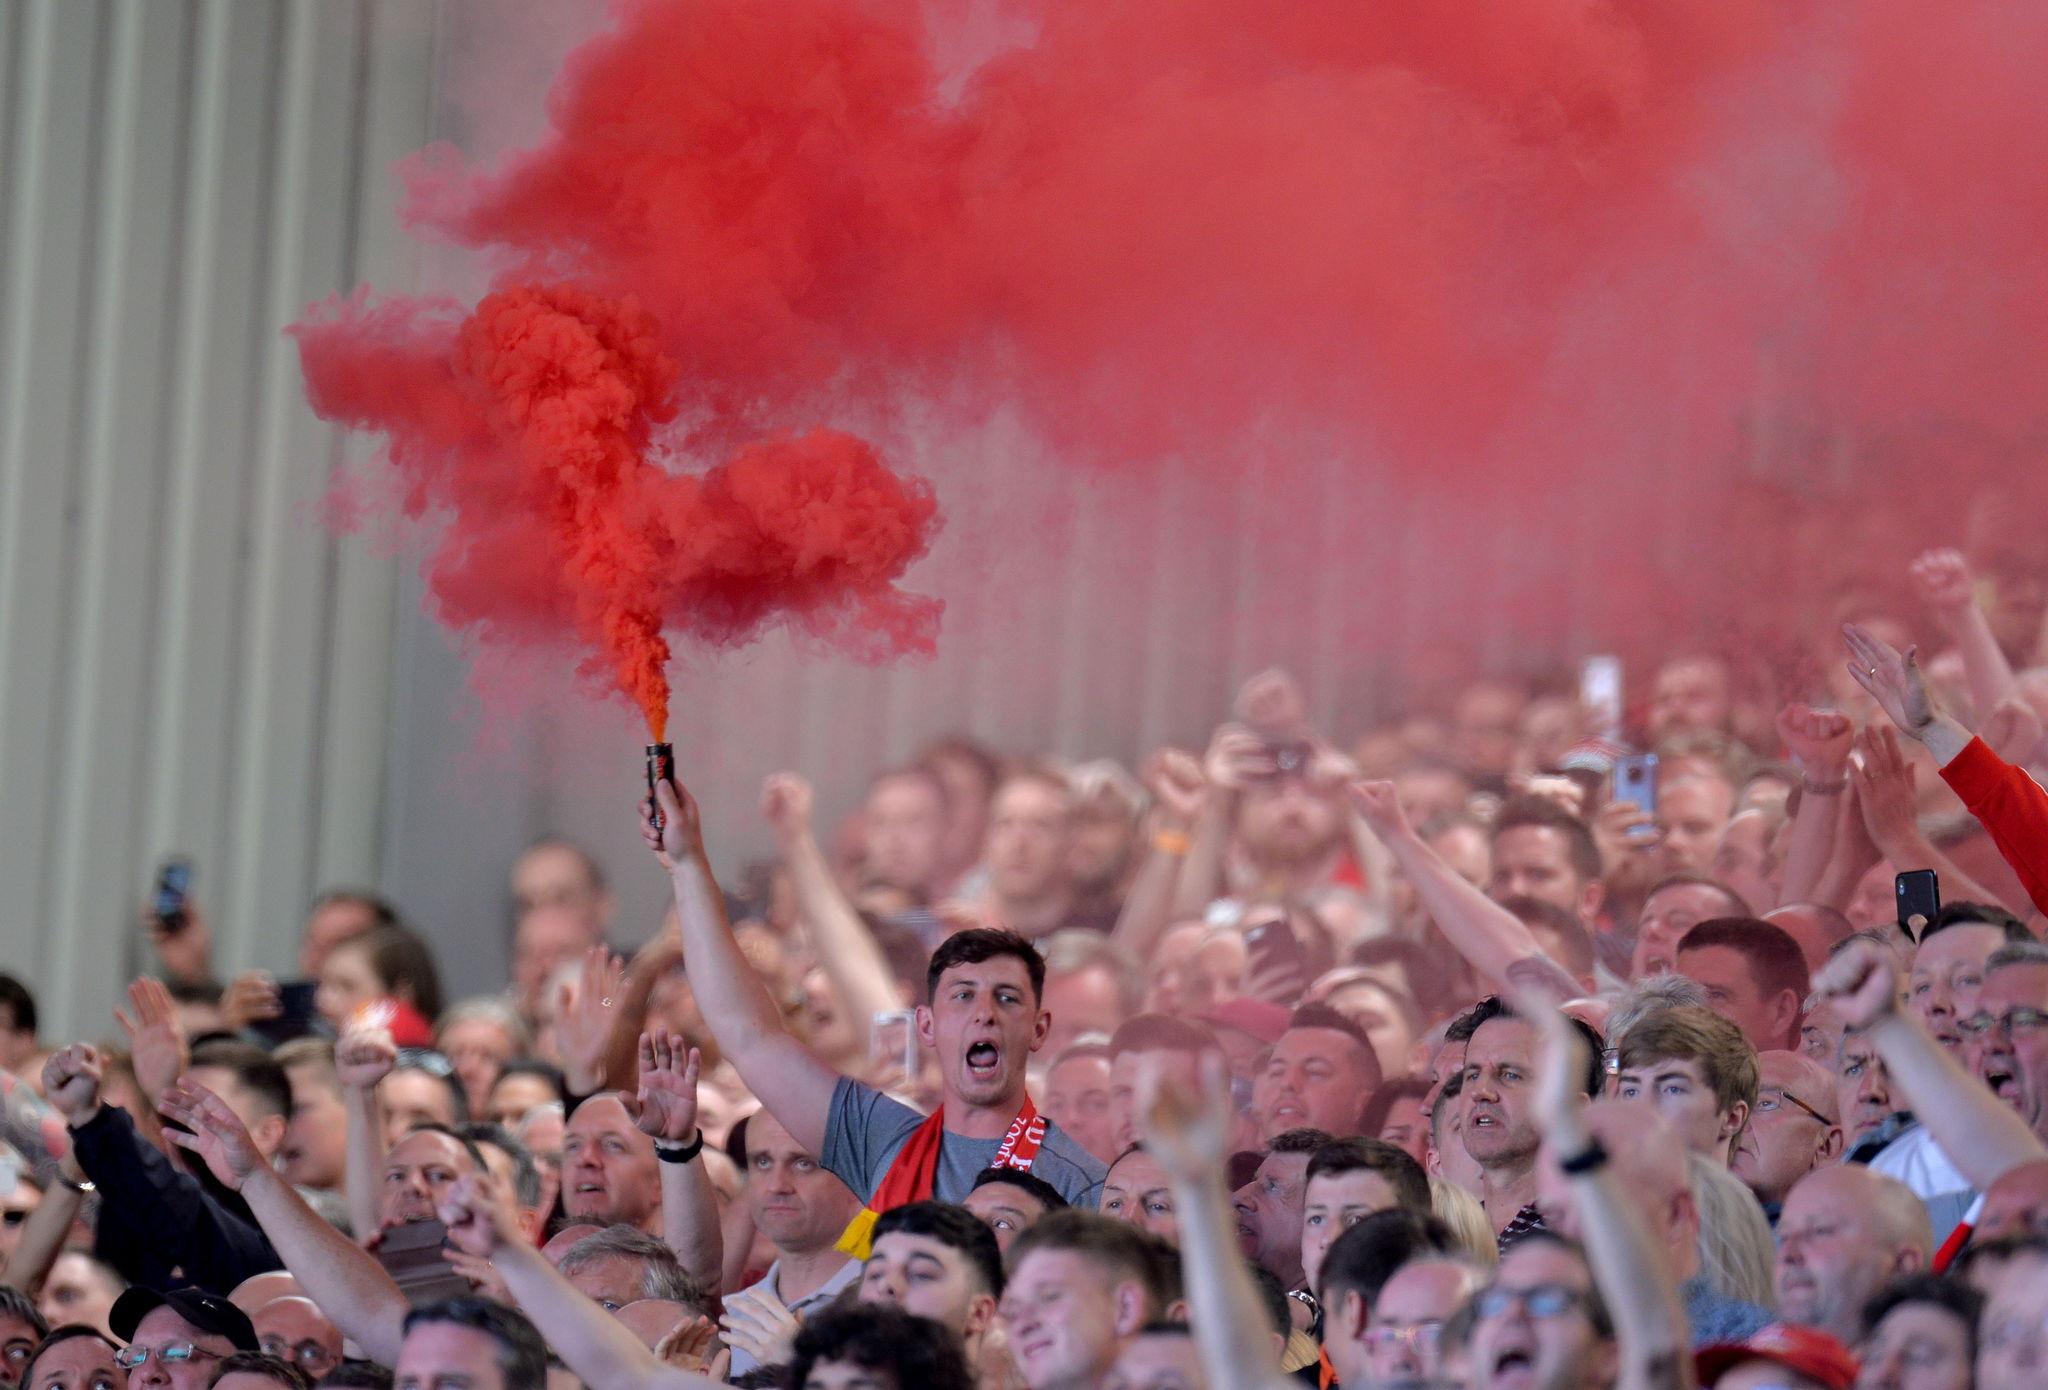 PP14. <HIT>Liverpool</HIT> (United Kingdom), 12/05/2019.- <HIT>Liverpool</HIT>s <HIT>fans</HIT> cheer for their team after the English Premier League match between <HIT>Liverpool</HIT> FC and Wolverhampton Wanderers FC at Anfield, <HIT>Liverpool</HIT>, Britain, 12 May 2019. (Reino Unido) EFE/EPA/PETER POWELL EDITORIAL USE ONLY. No use with unauthorized audio, video, data, fixture lists, club/league logos or live services. Online in-match use limited to 120 images, no video emulation. No use in betting, games or single club/league/player publications